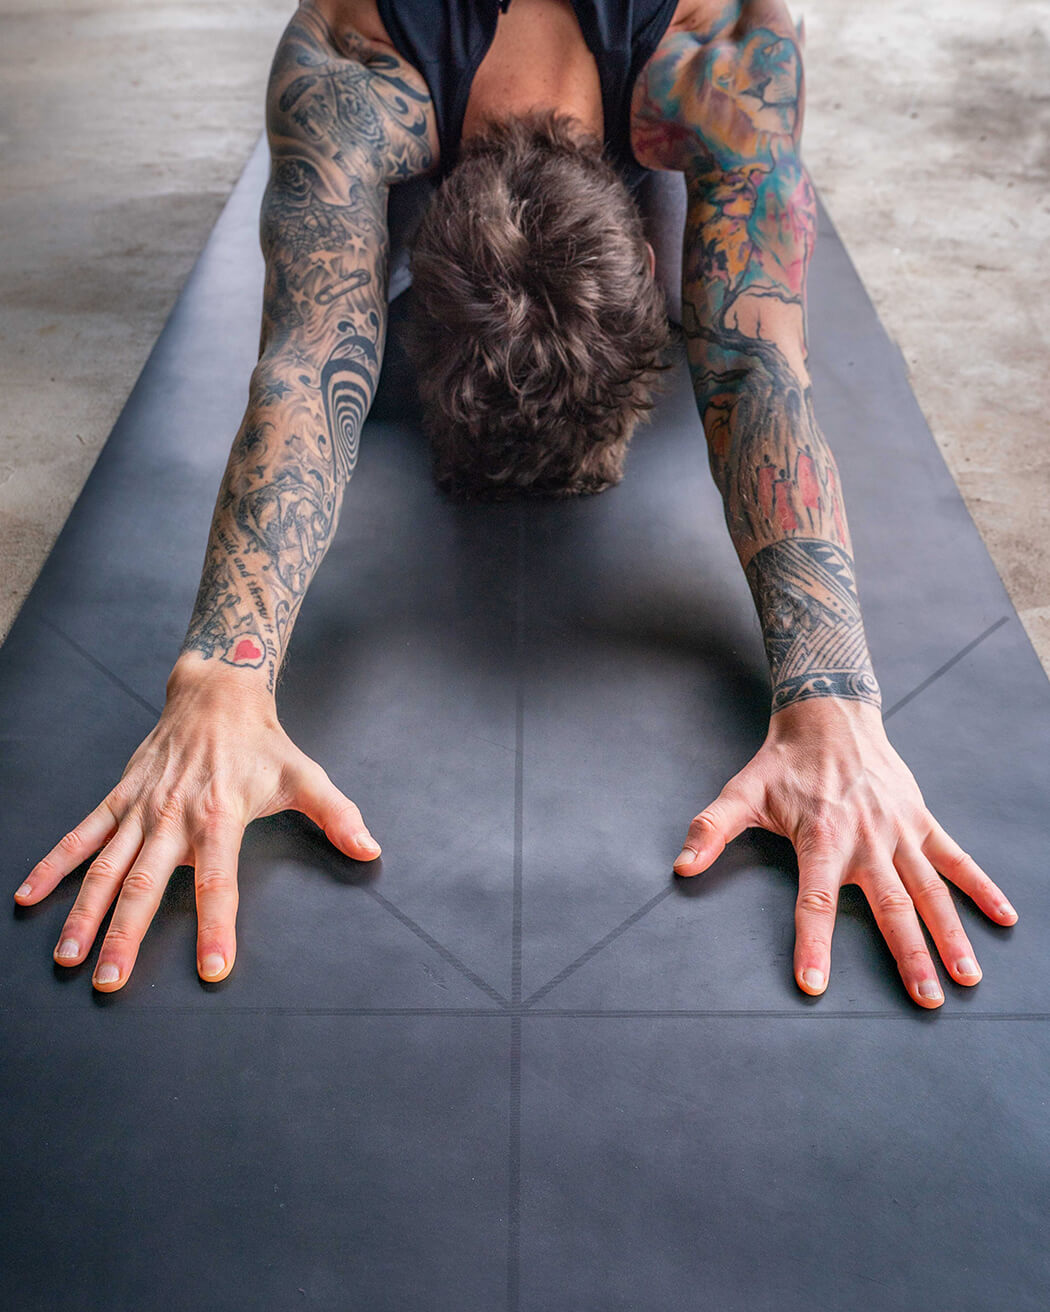 The Warrior Yoga Mat For Men By Warrior Addict In Black Rubber With Alignment Lines In Use By Andrew Macdonald Photographer